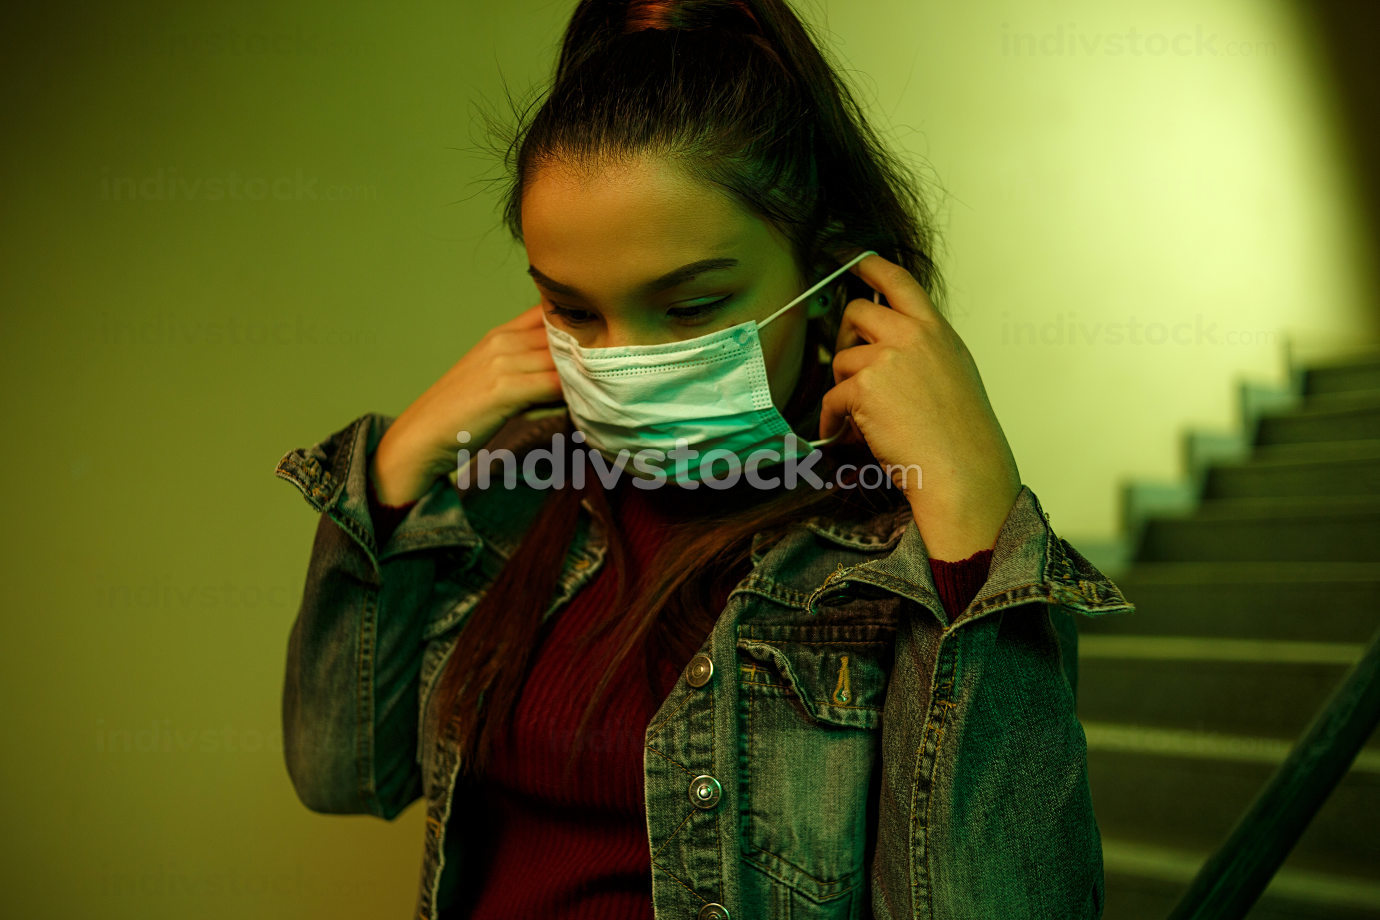 portrait of an Asian young woman. stairwell of the hospital. the girl wears a mask to avoid getting infected with the virus